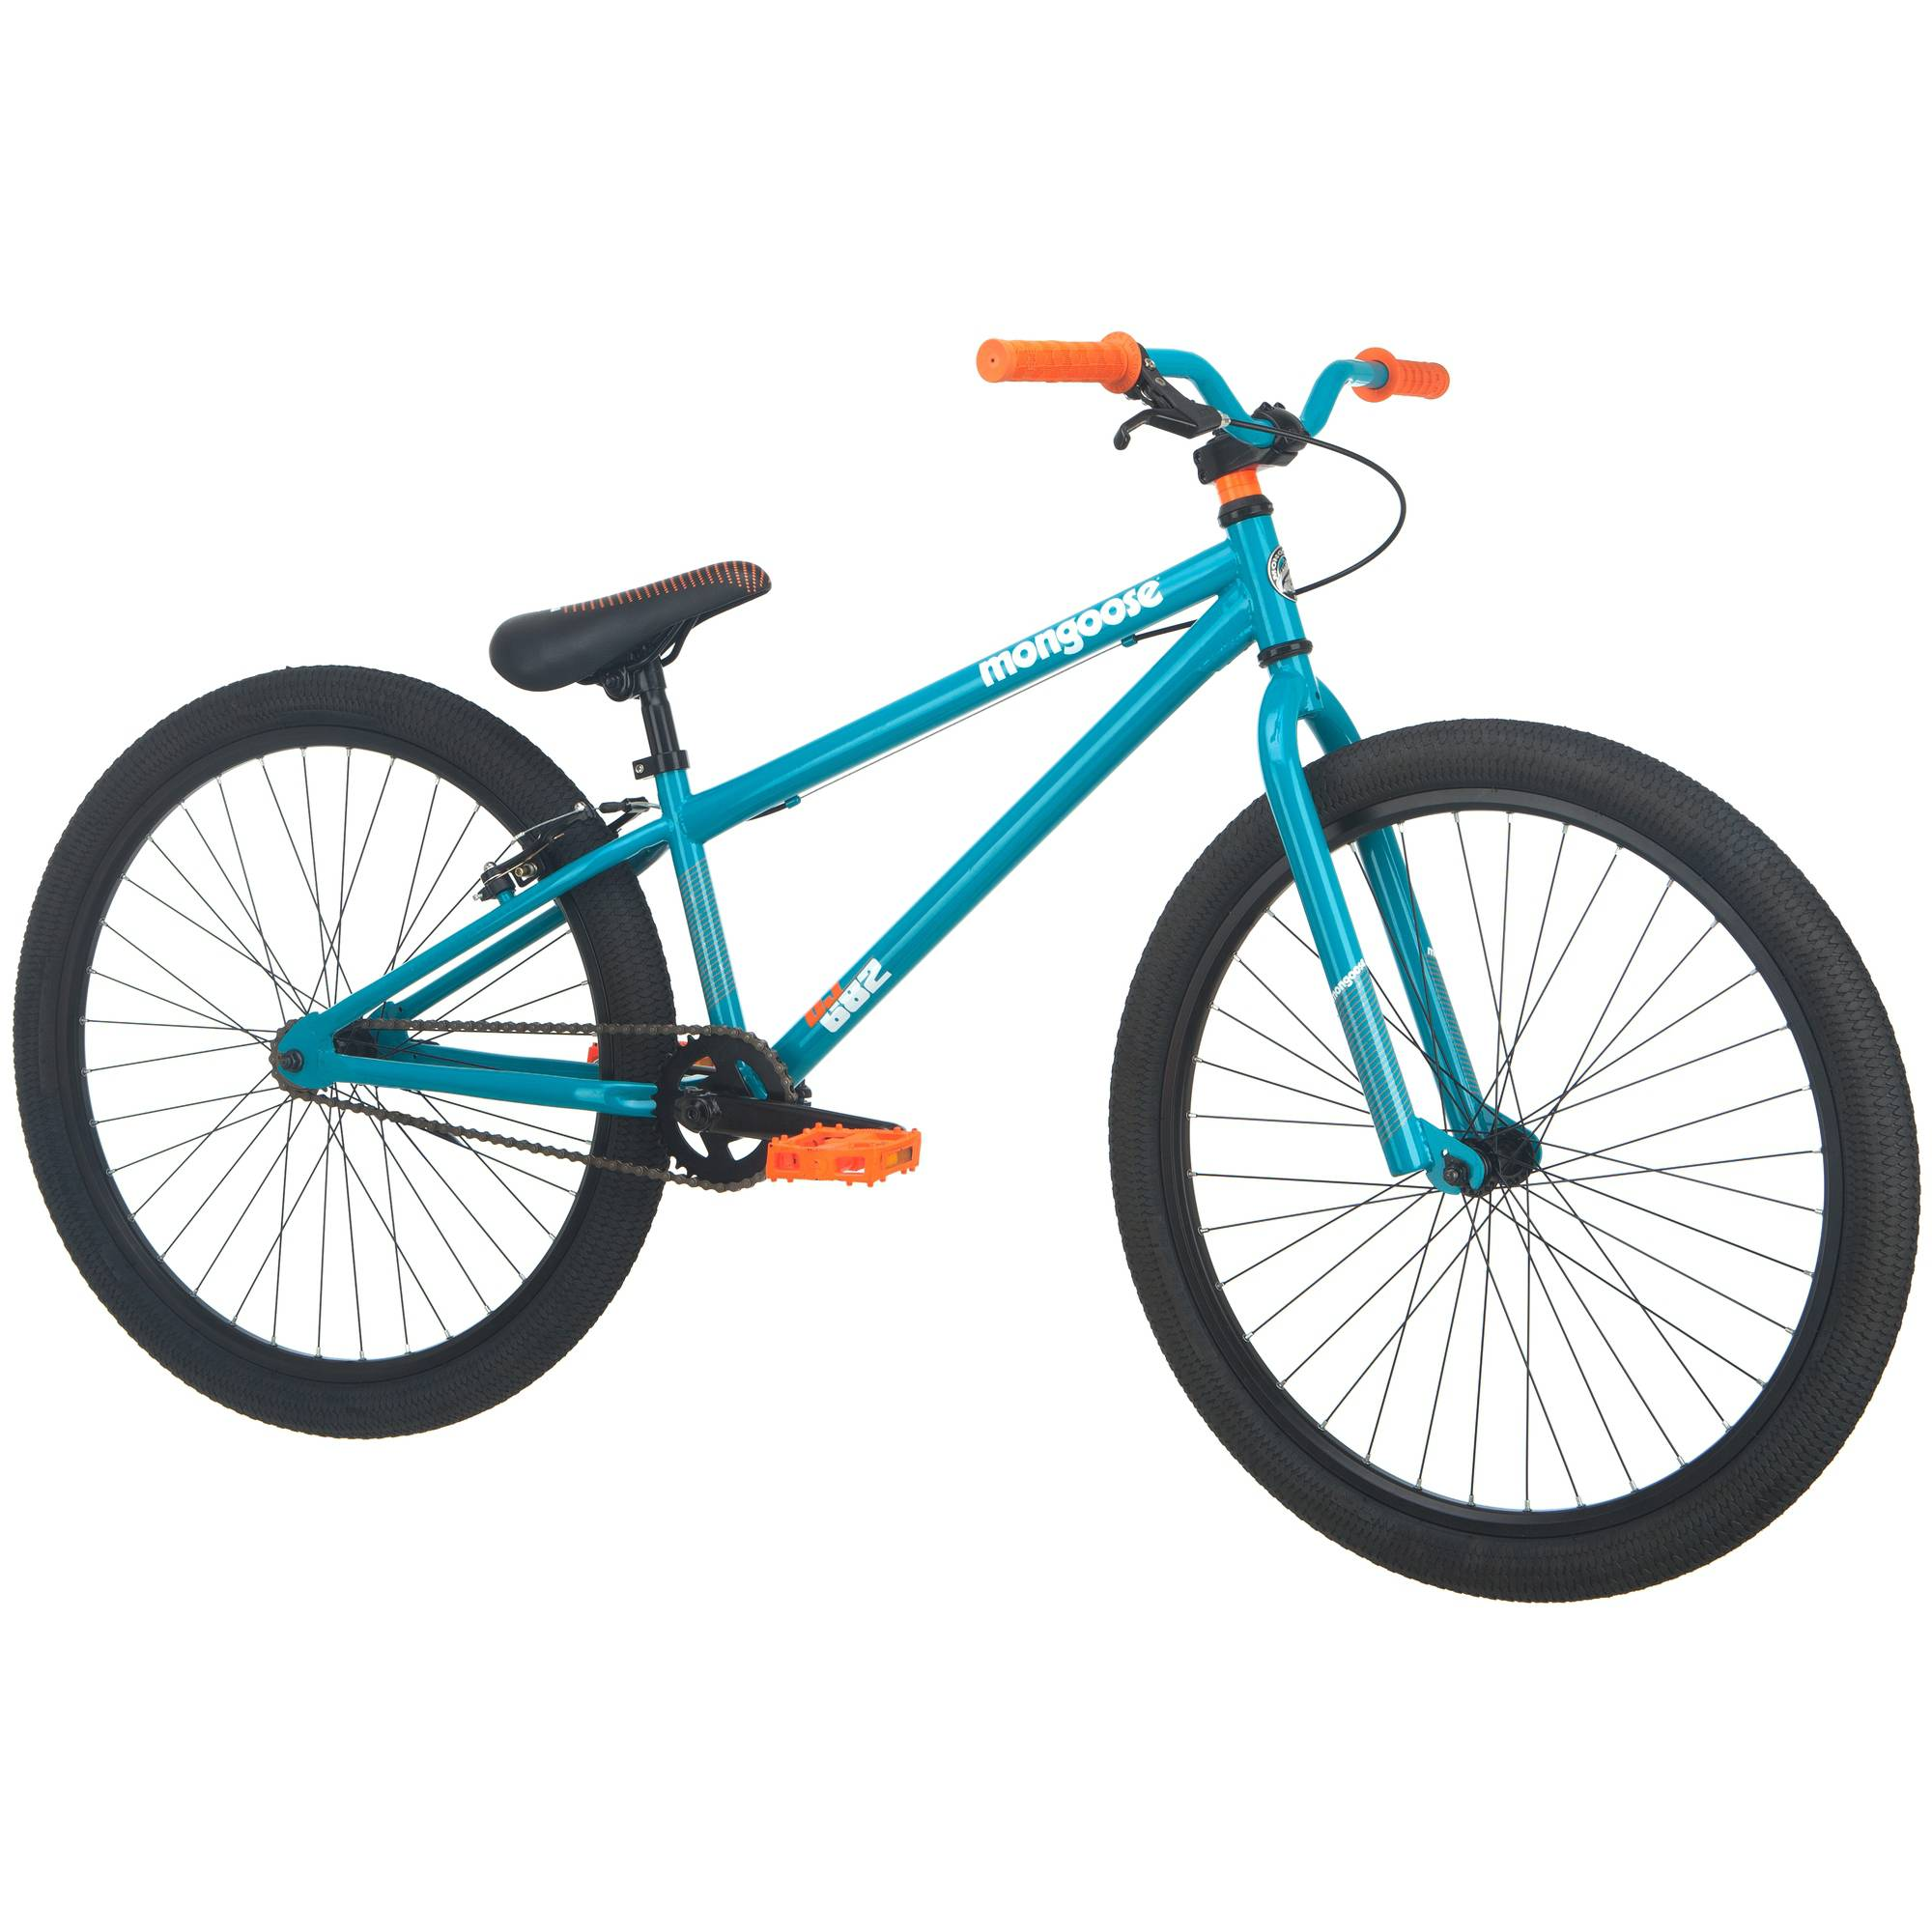 26 Mongoose Dirt Jump 682 Boys Mountain Bike Teal